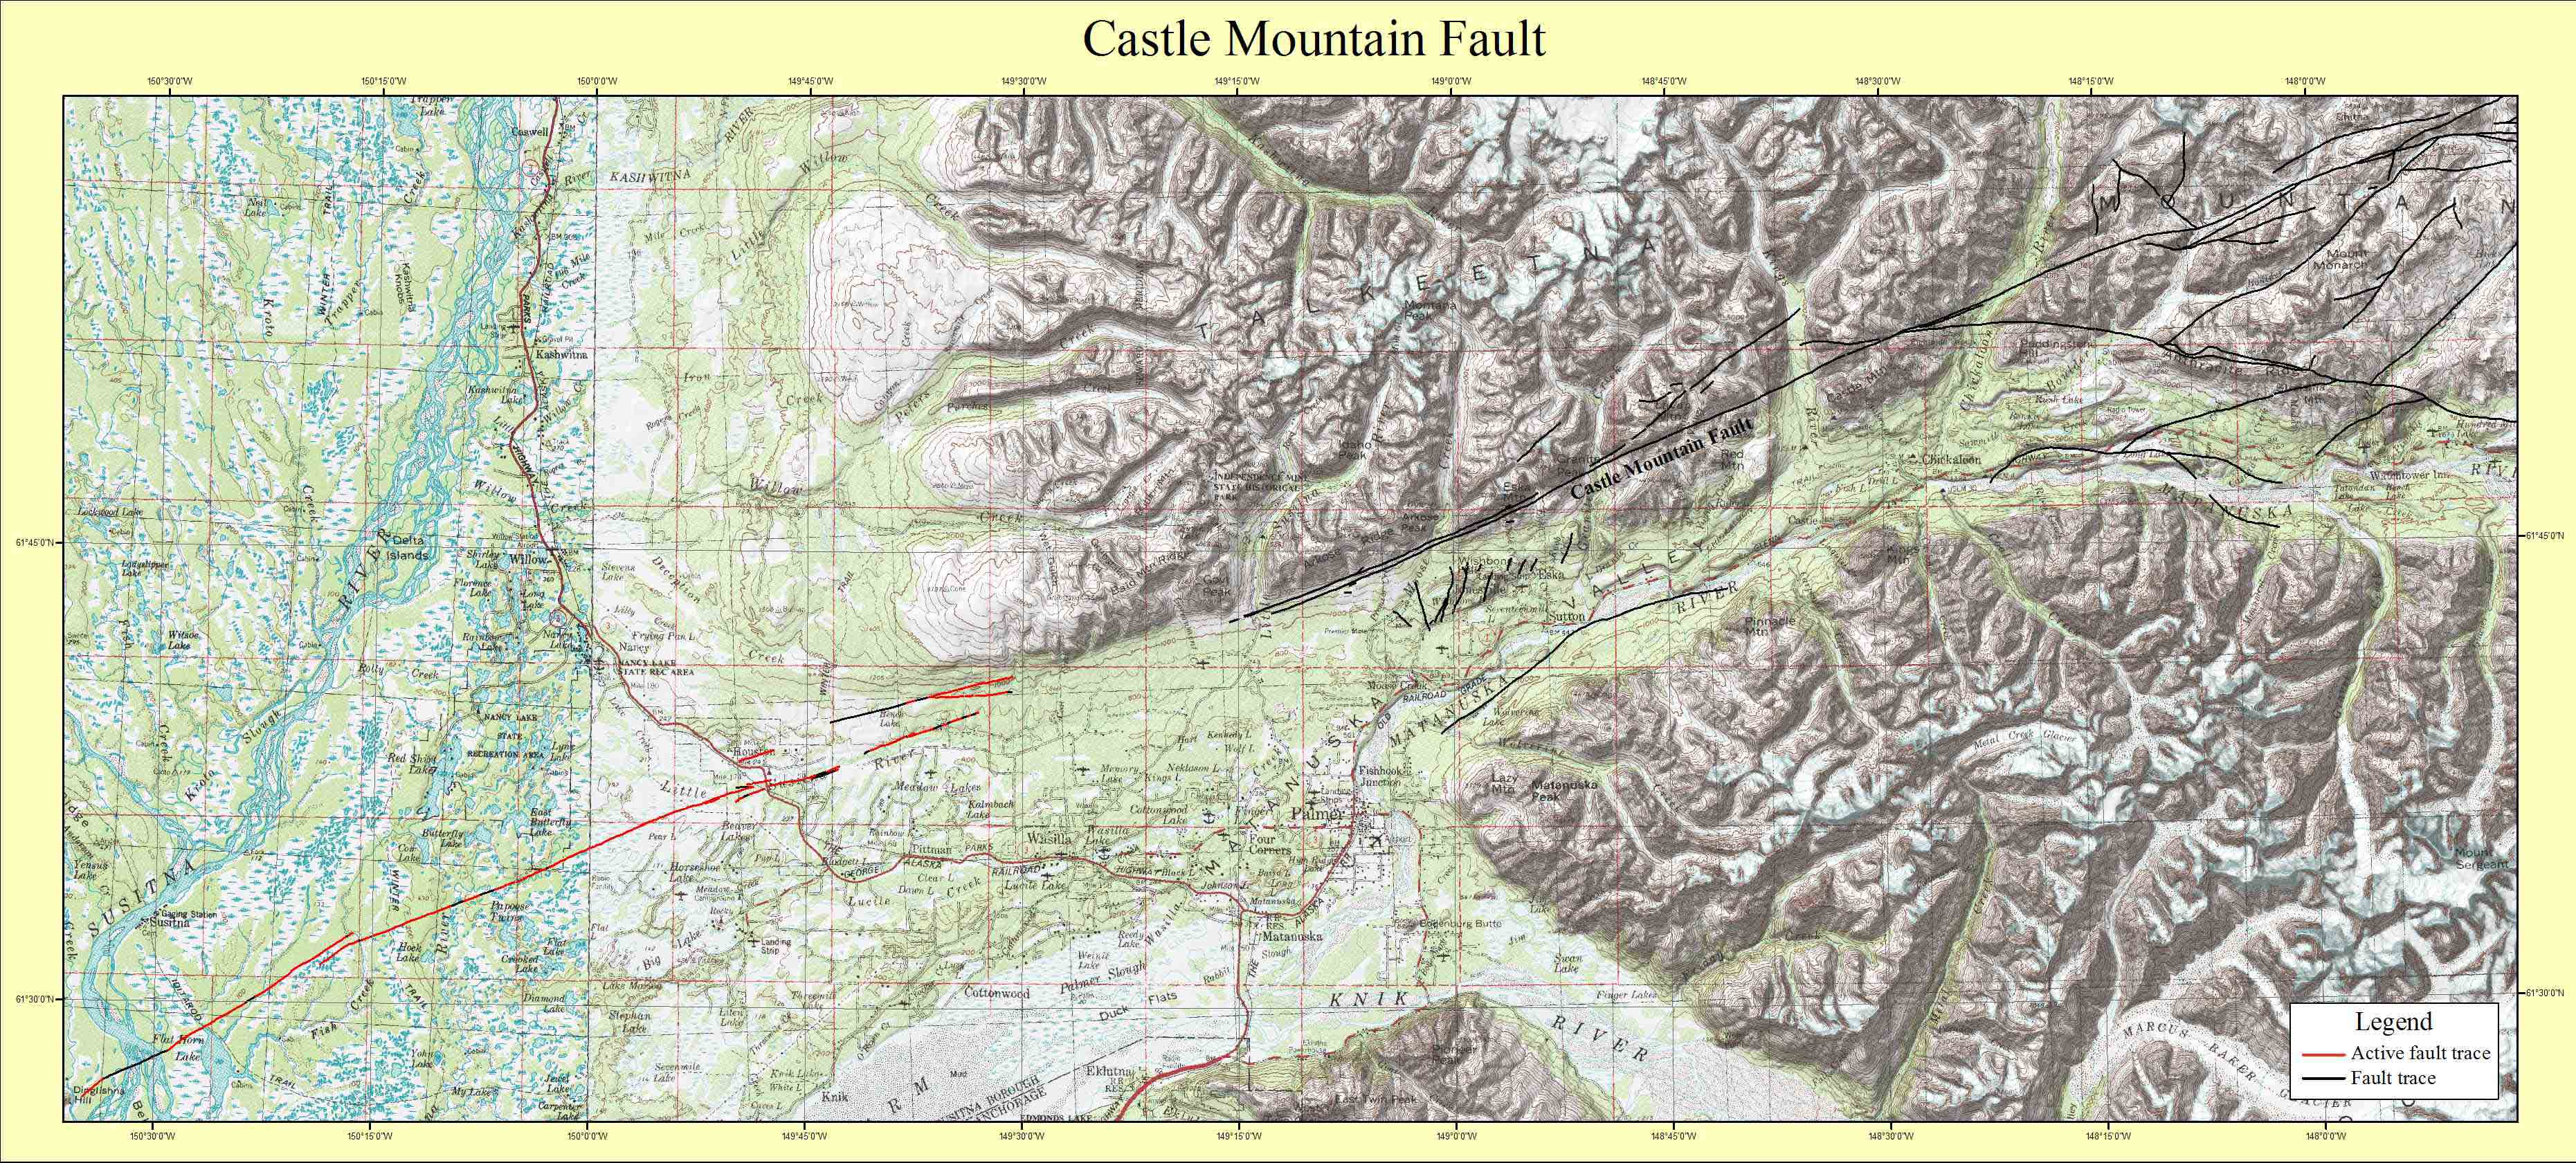 Map Of Entire Castle Mountain Fault